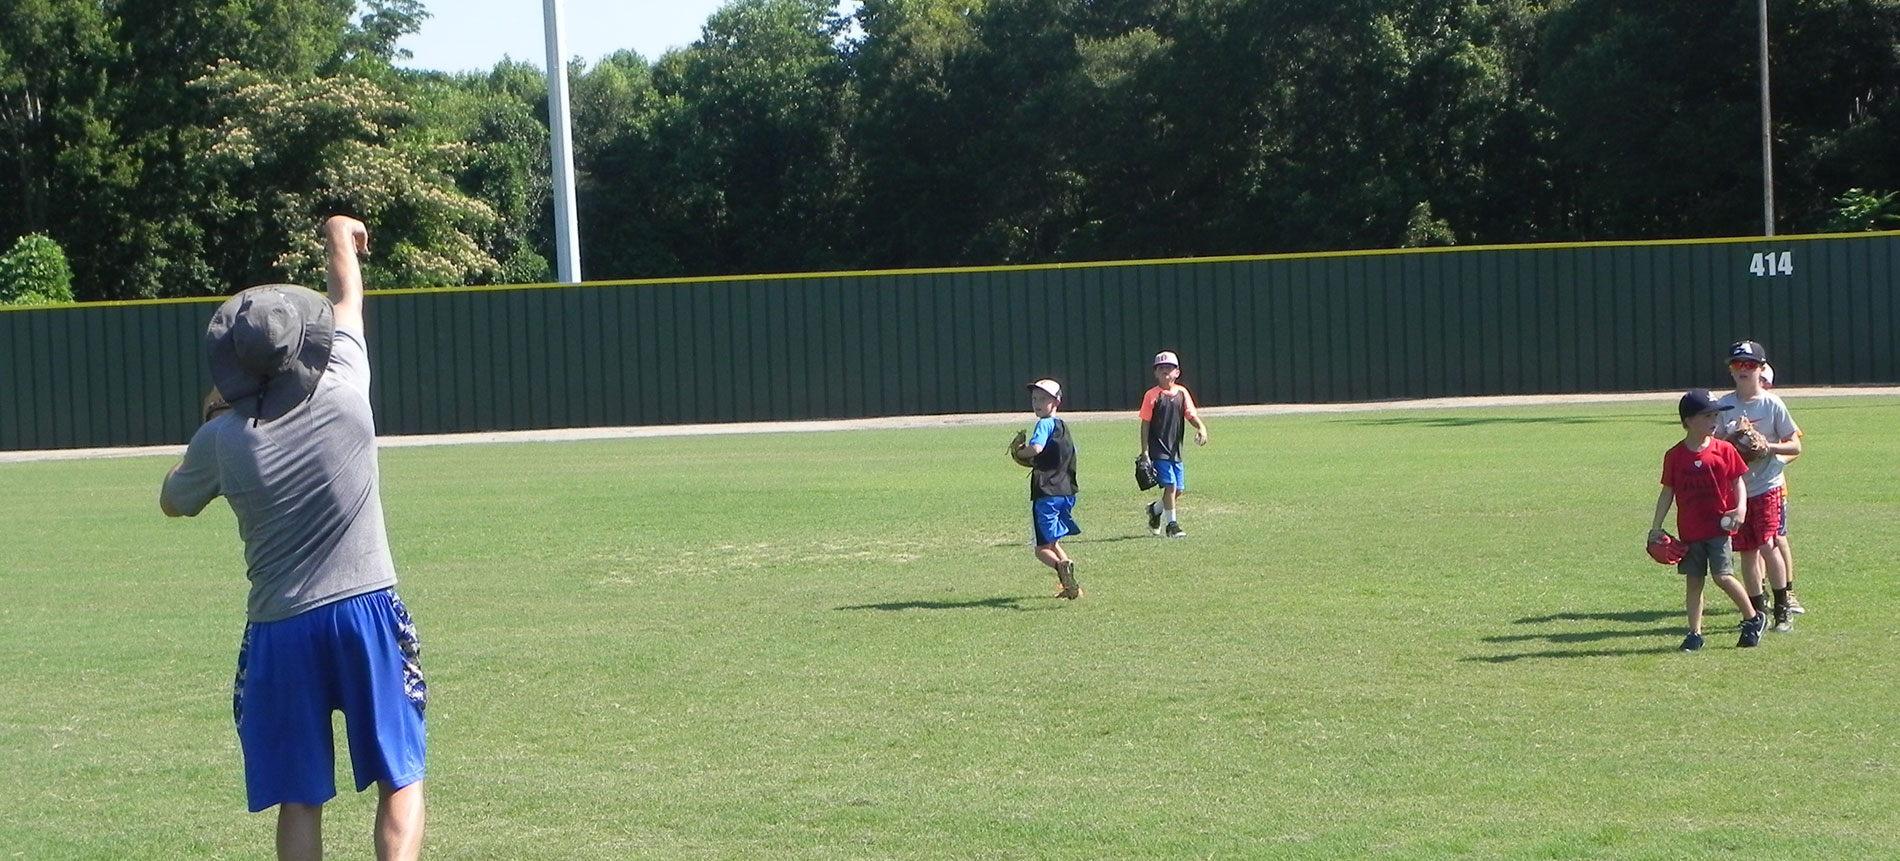 Second Week of Baseball Camp in Full Swing